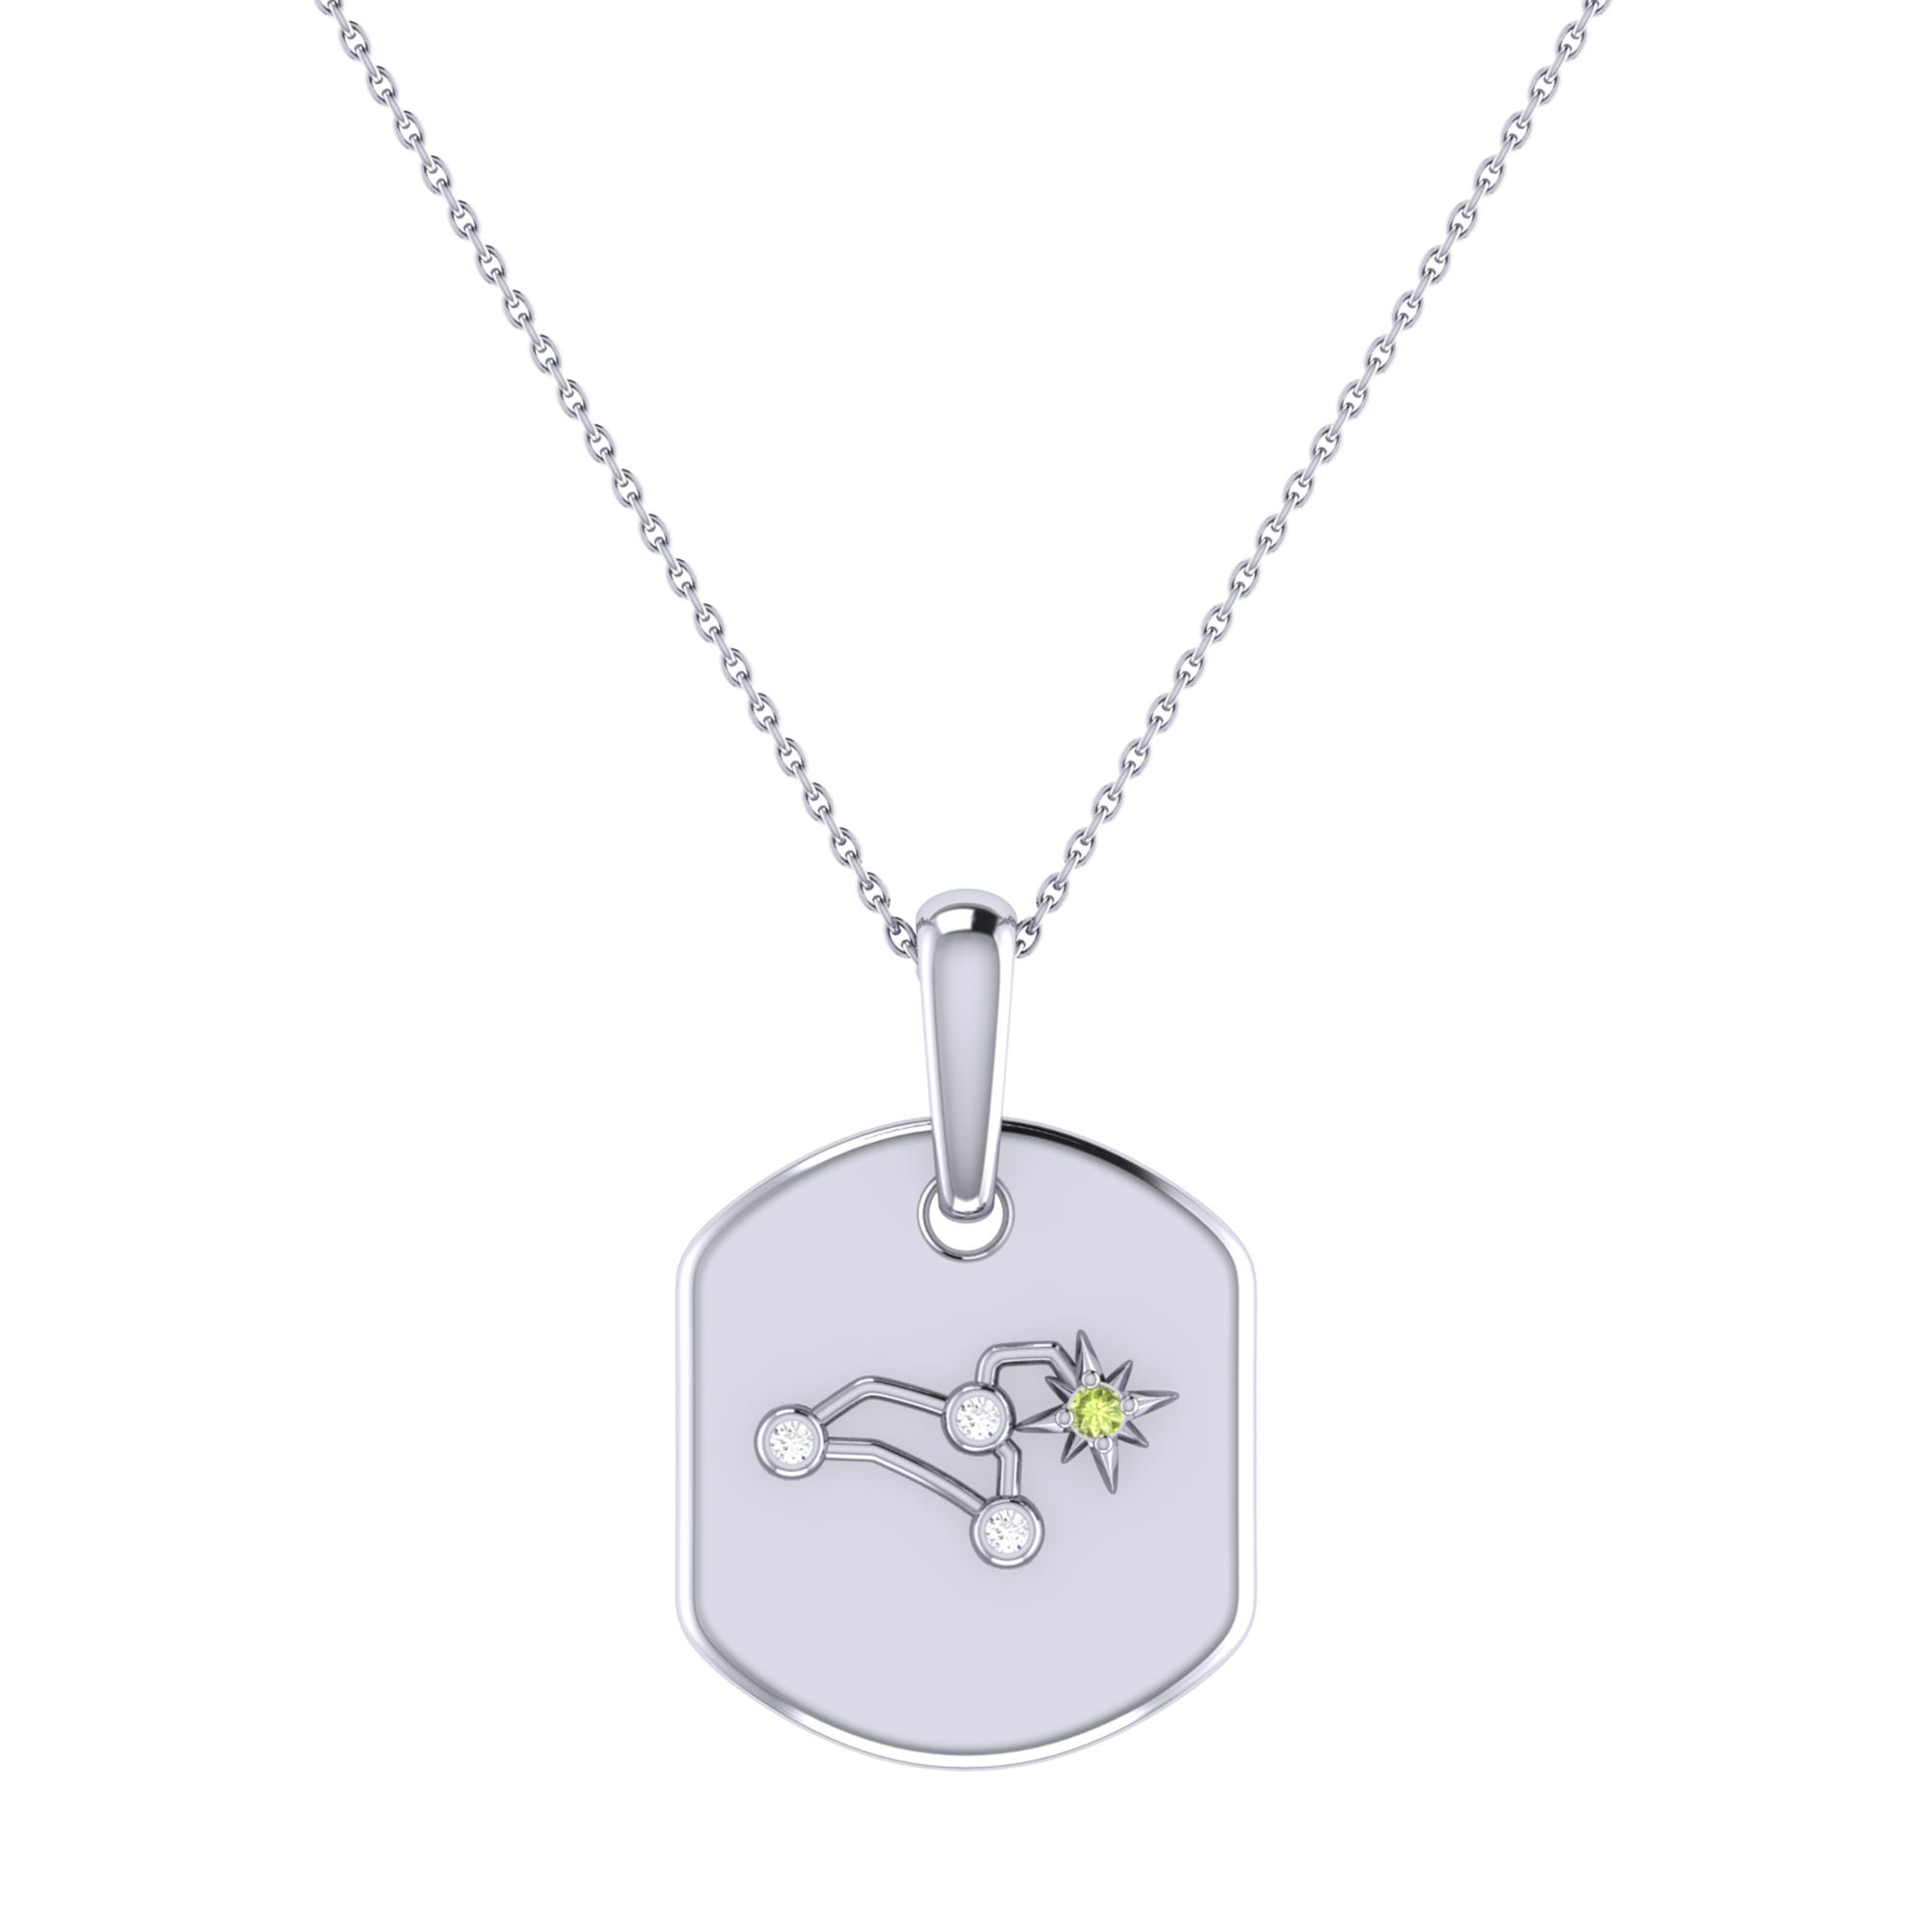 Diamond and Peridot Leo Constellation Tag Necklace in Sterling Silver